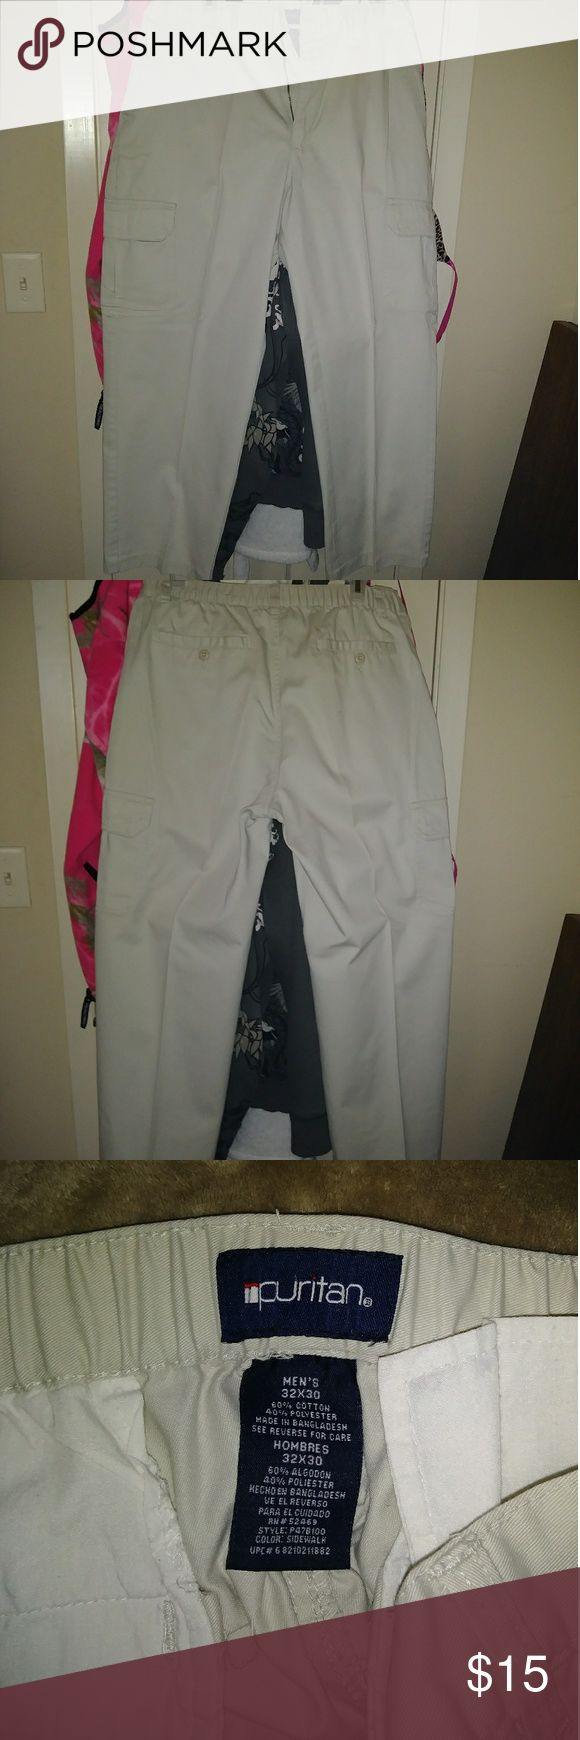 Mens Khaki pants Mens size 32X30 Pants